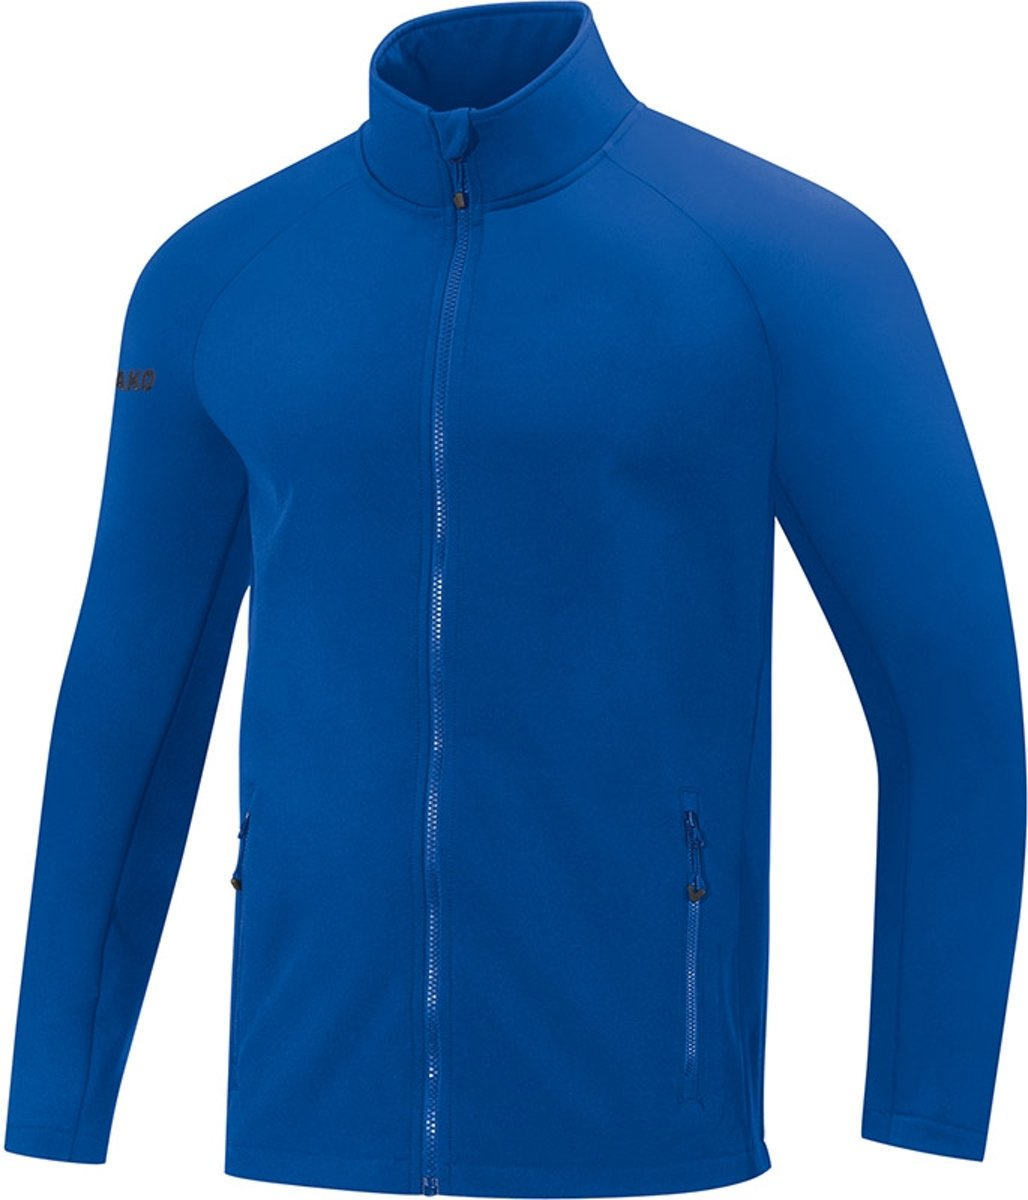 Jako Team Dames Softshell Jas - Softshelljassen  - blauw - 40